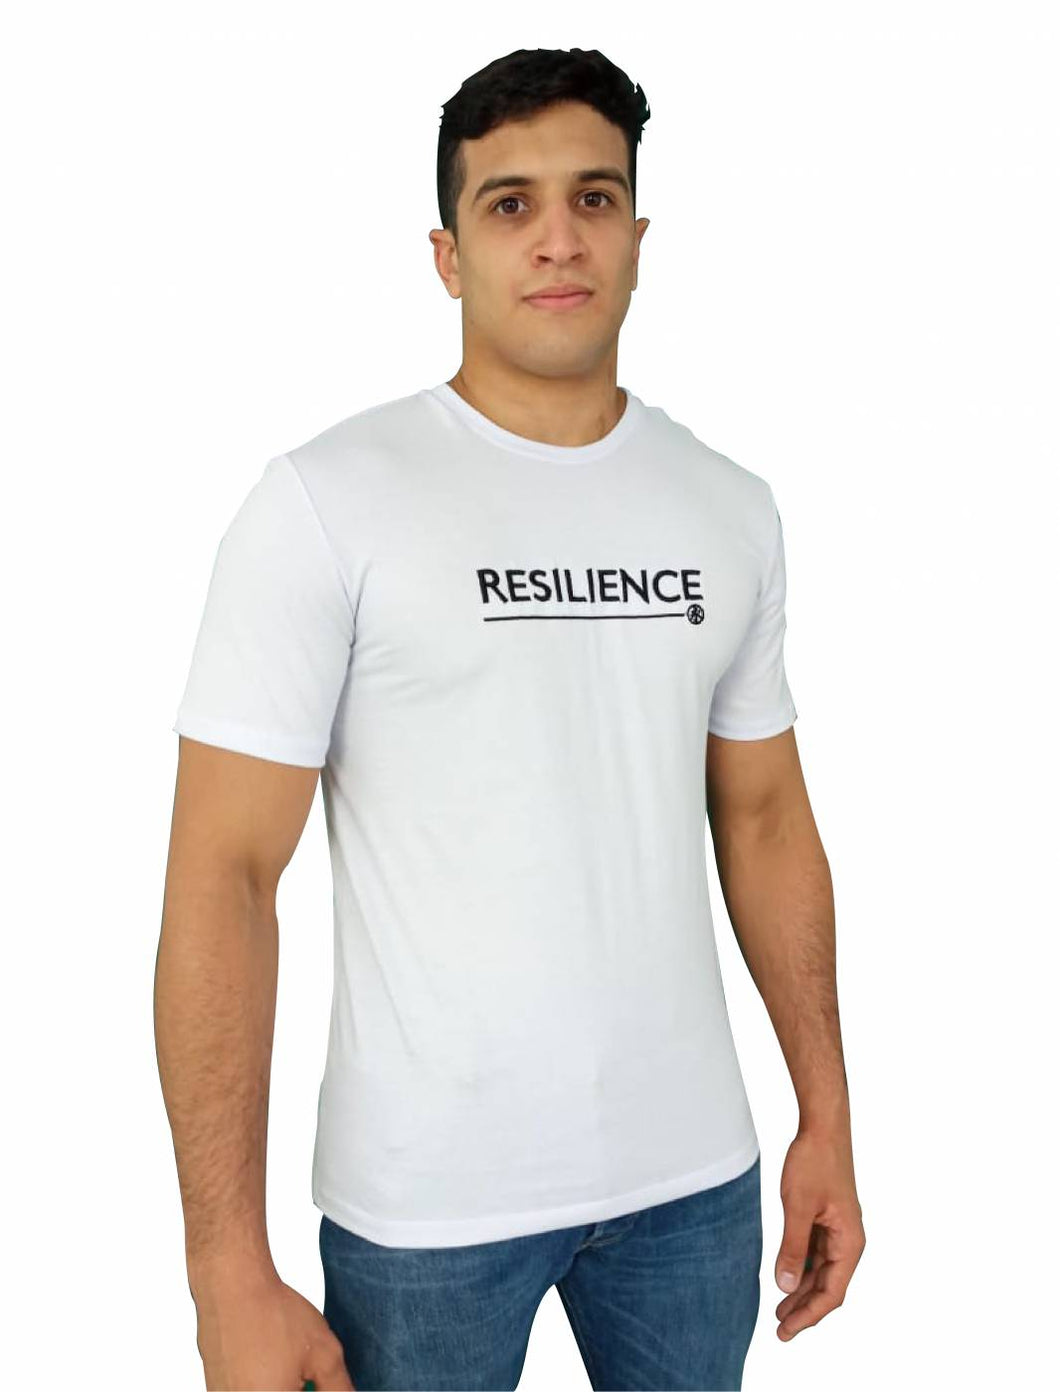 Resilience T-Shirt - White